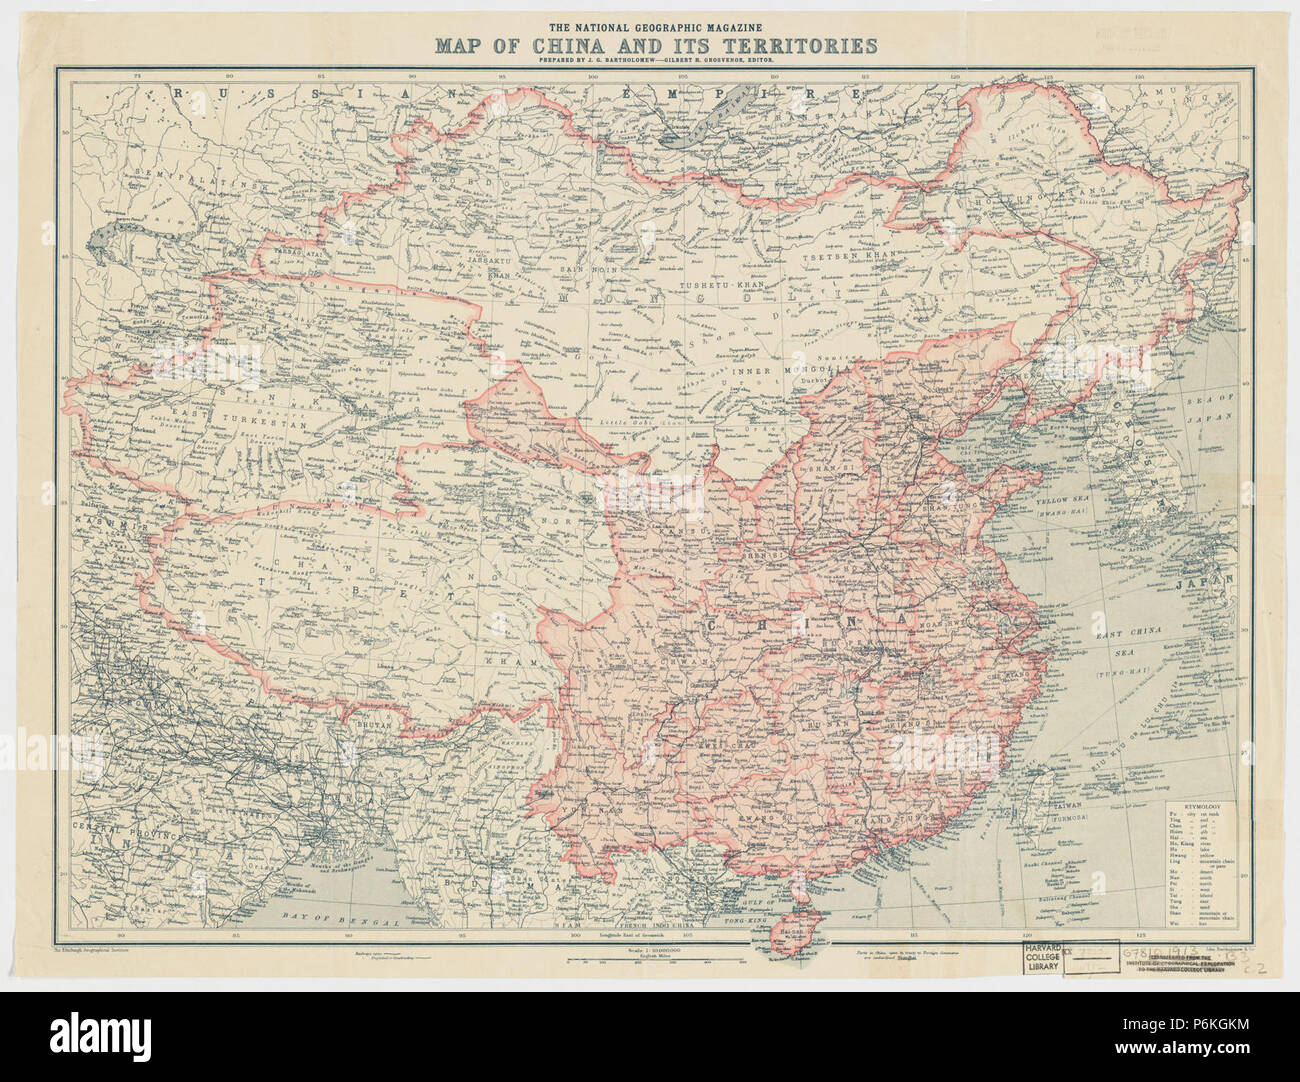 National Geographic Map Of China.1912 China Map From National Geographic Stock Photo 210642536 Alamy